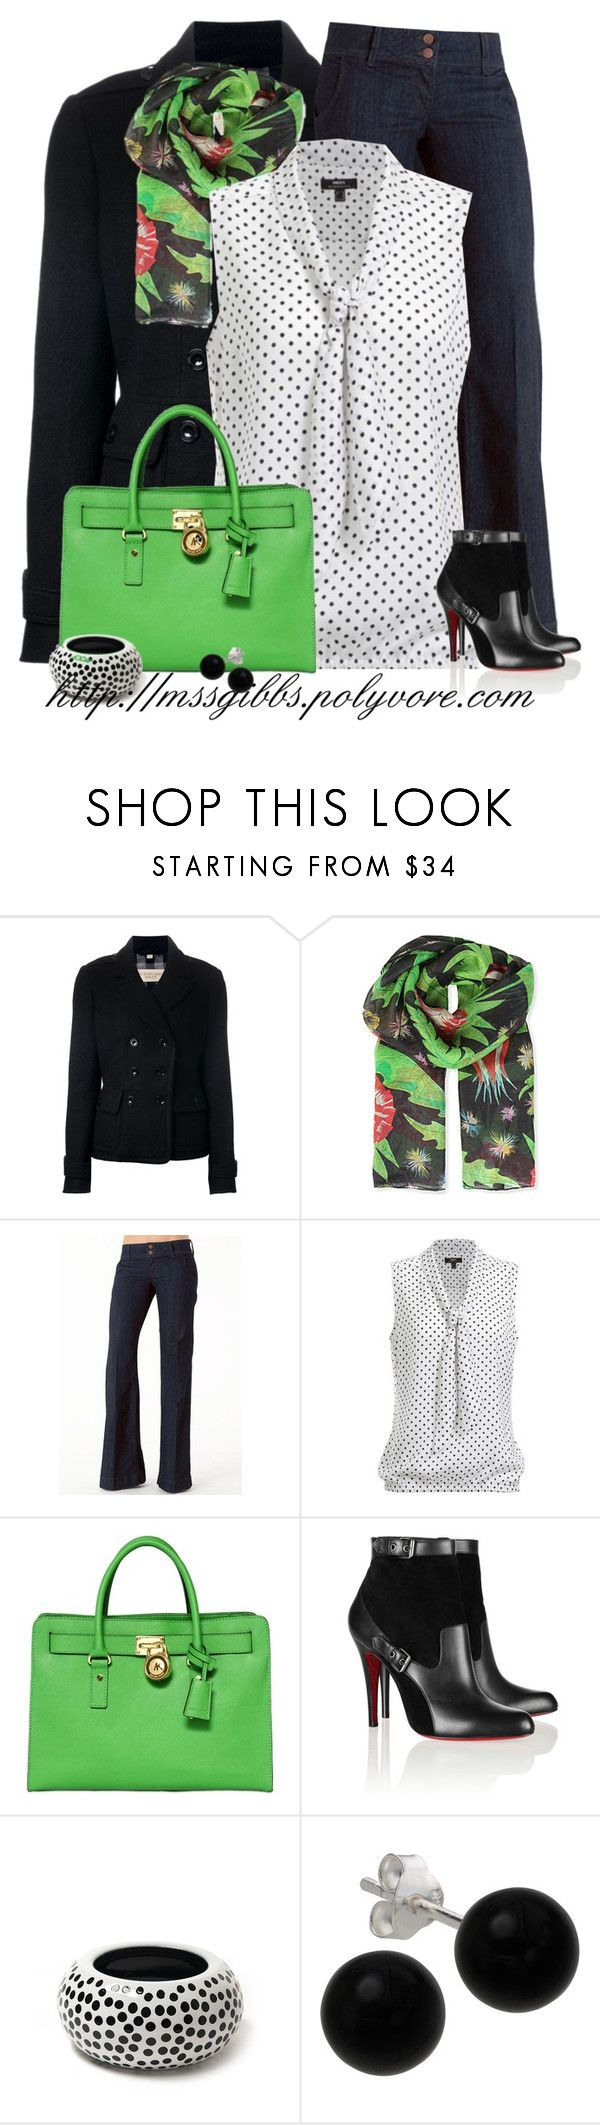 """""""Ankle Boots"""" by mssgibbs ❤ liked on Polyvore featuring Burberry, French Connection, MICHAEL Michael Kors, Christian Louboutin, Sonia Rykiel and Bridge Jewelry"""